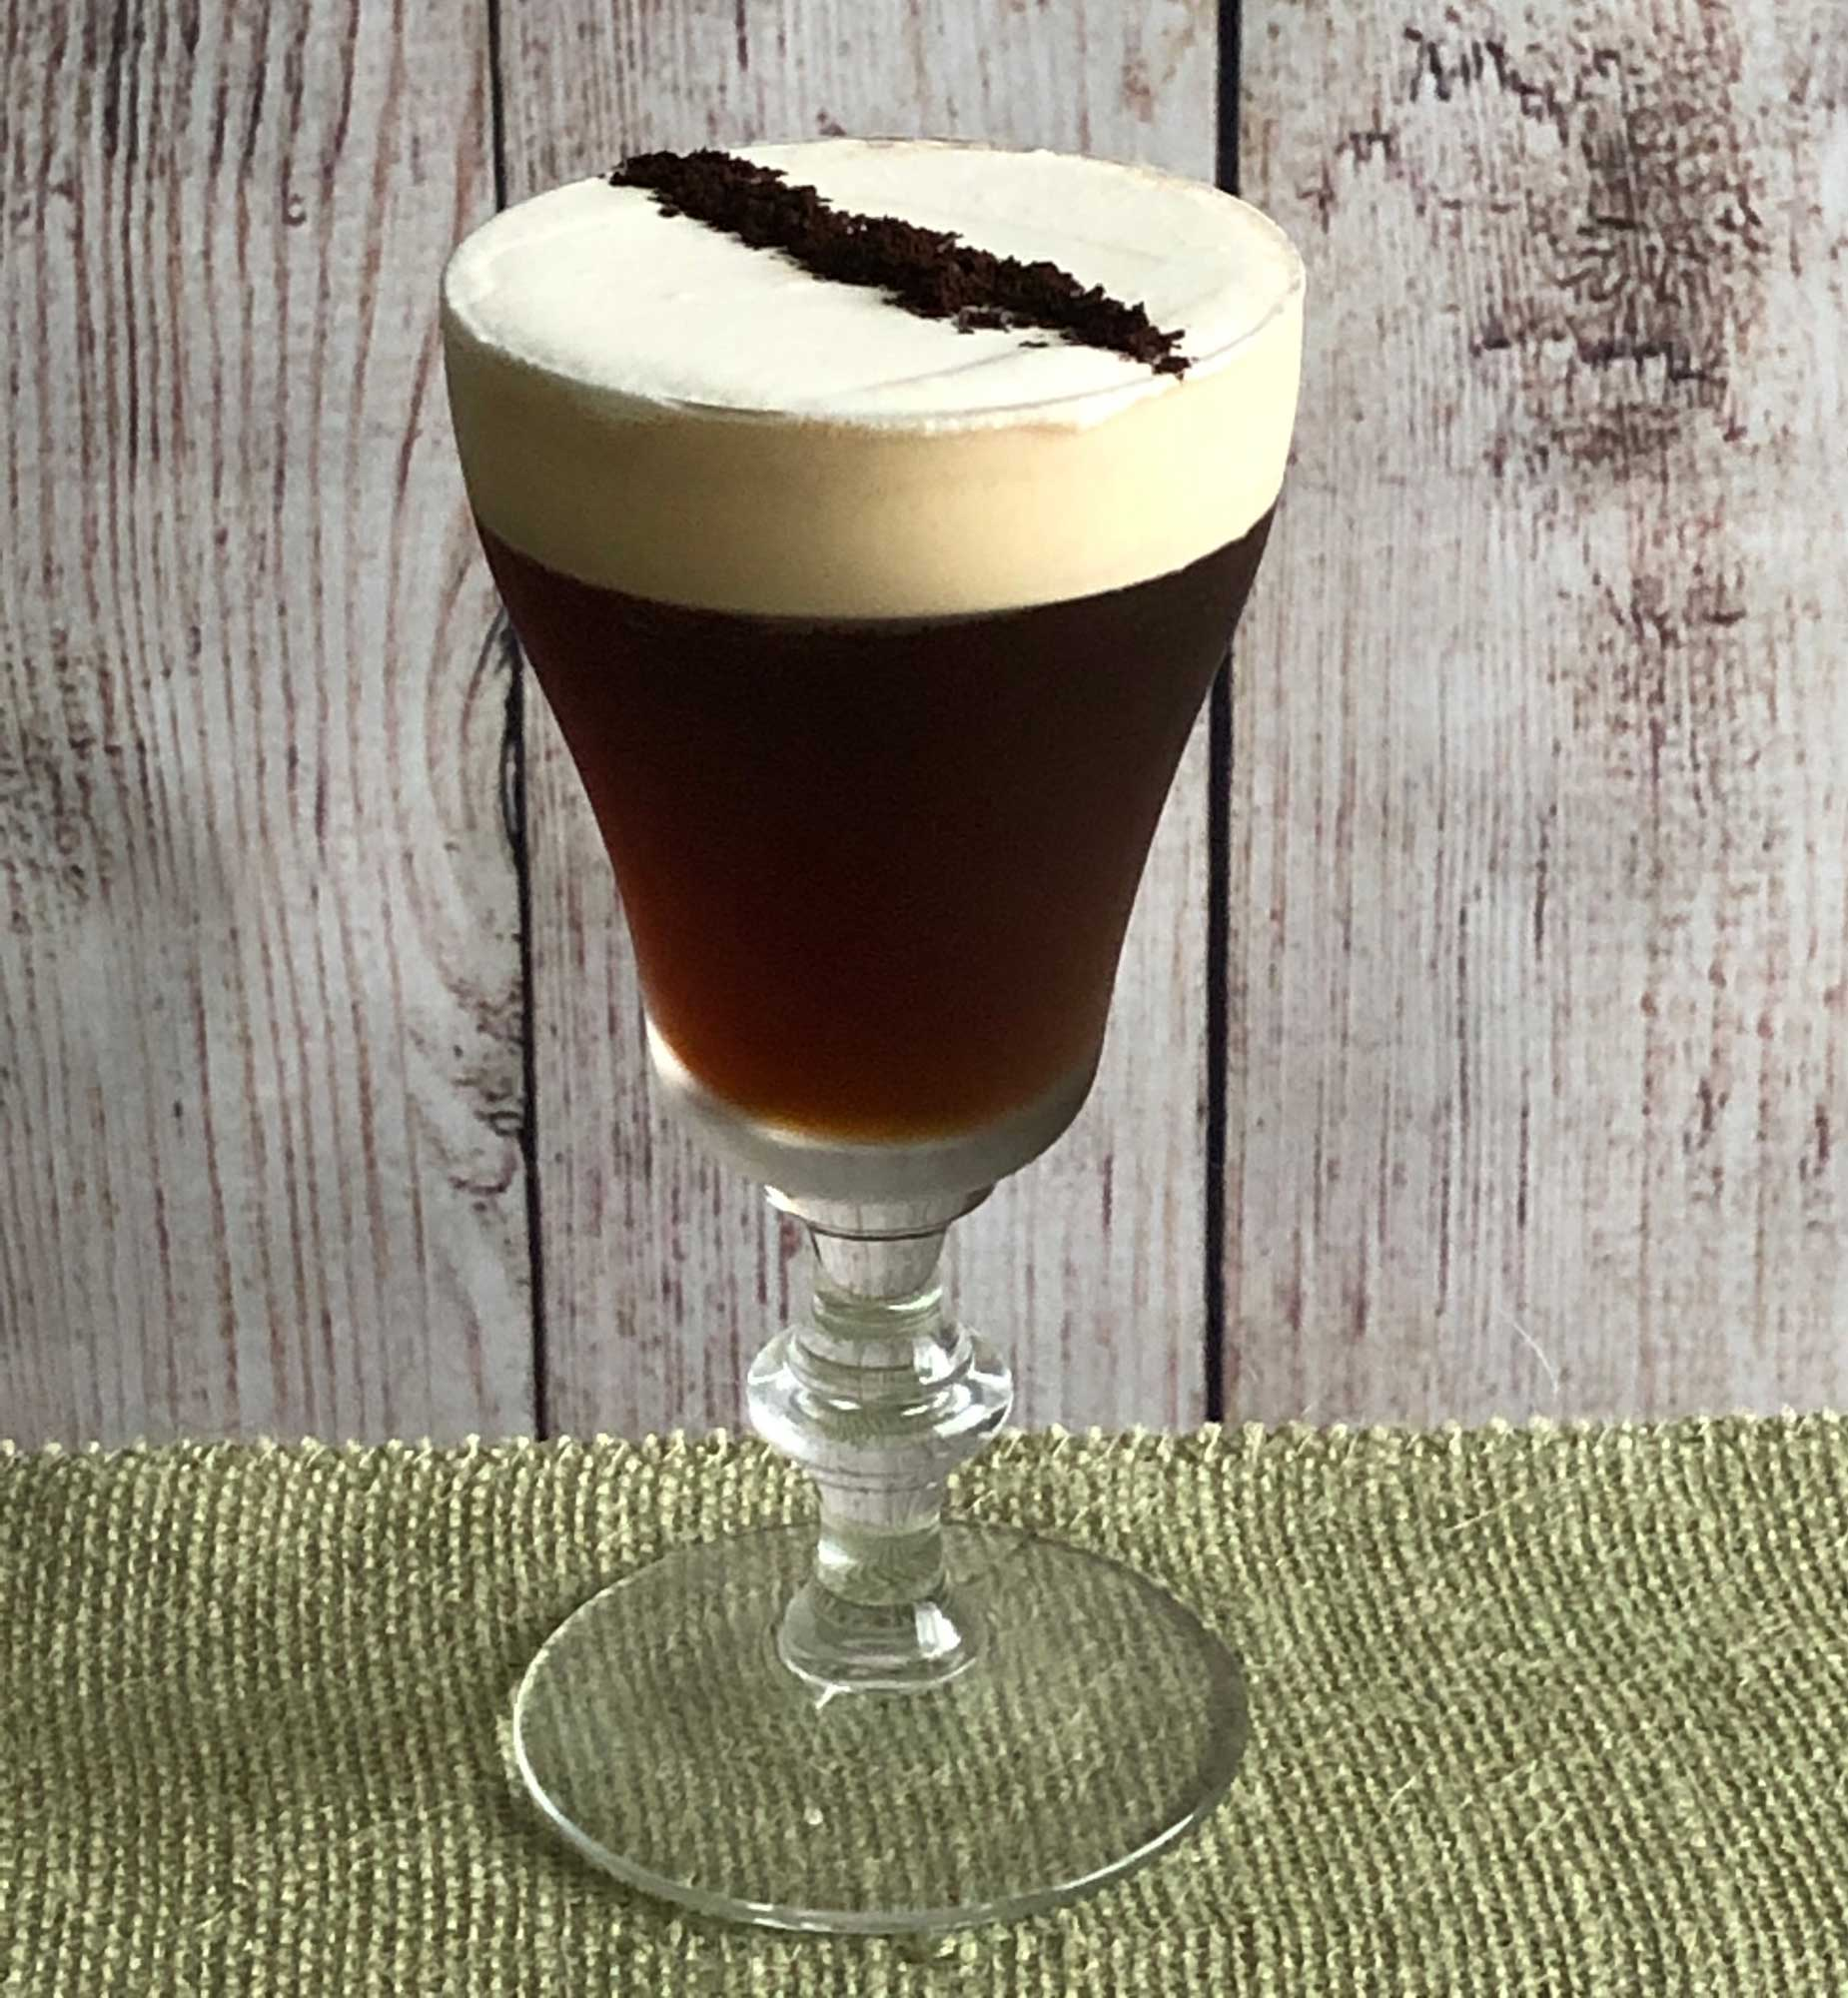 An example of the Freddo Corretto, the mixed drink (cocktail), by Salt Air, Venice, CA, featuring Cardamaro Vino Amaro, cold brew coffee, raw sugar syrup, and Angostura bitters; photo by Lee Edwards